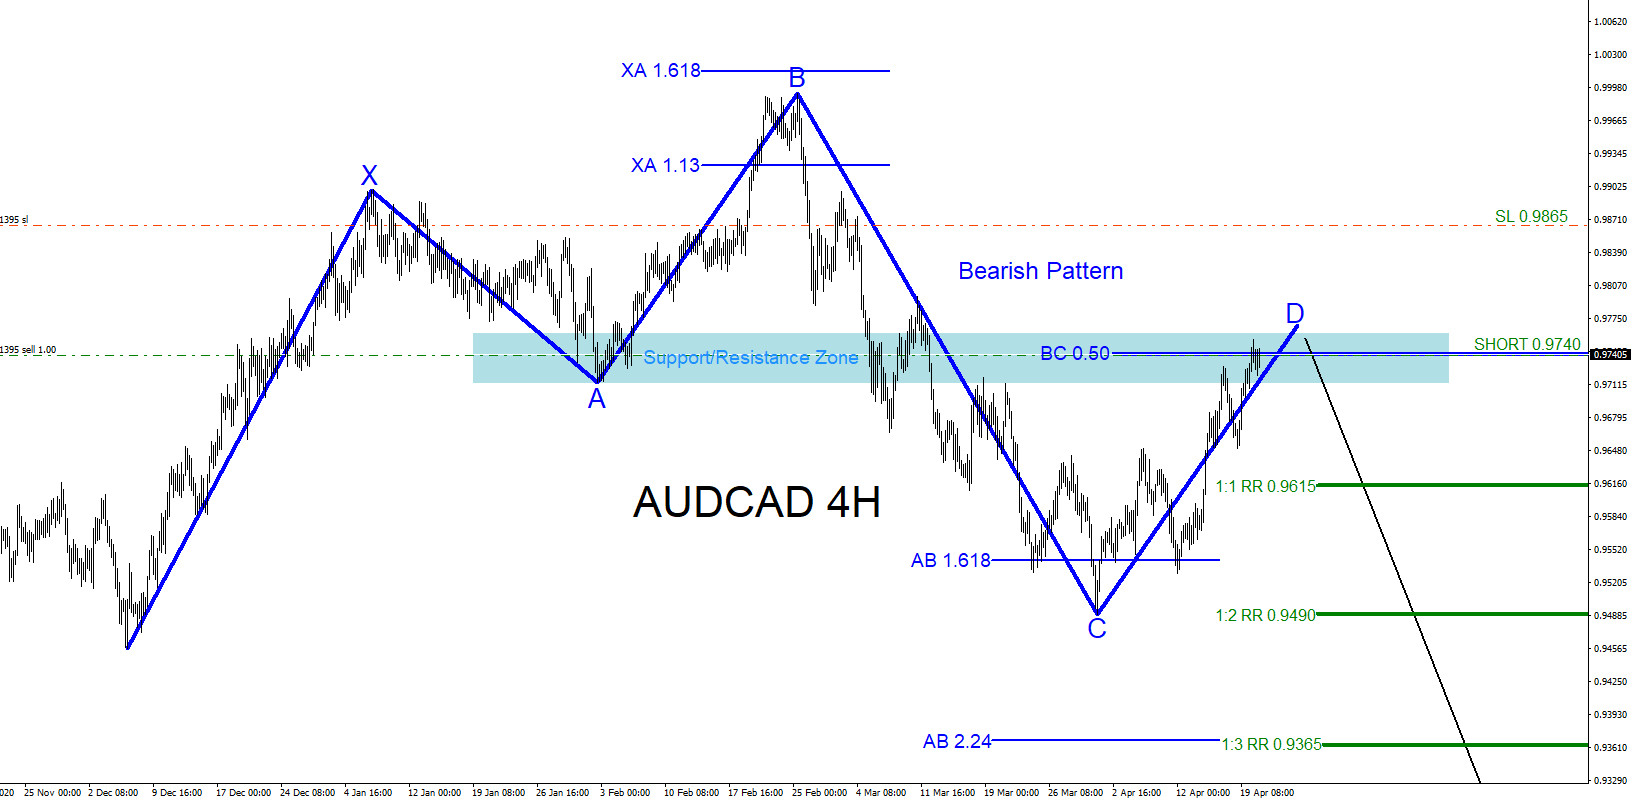 AUDCAD : Tracking and Trading the Move Lower